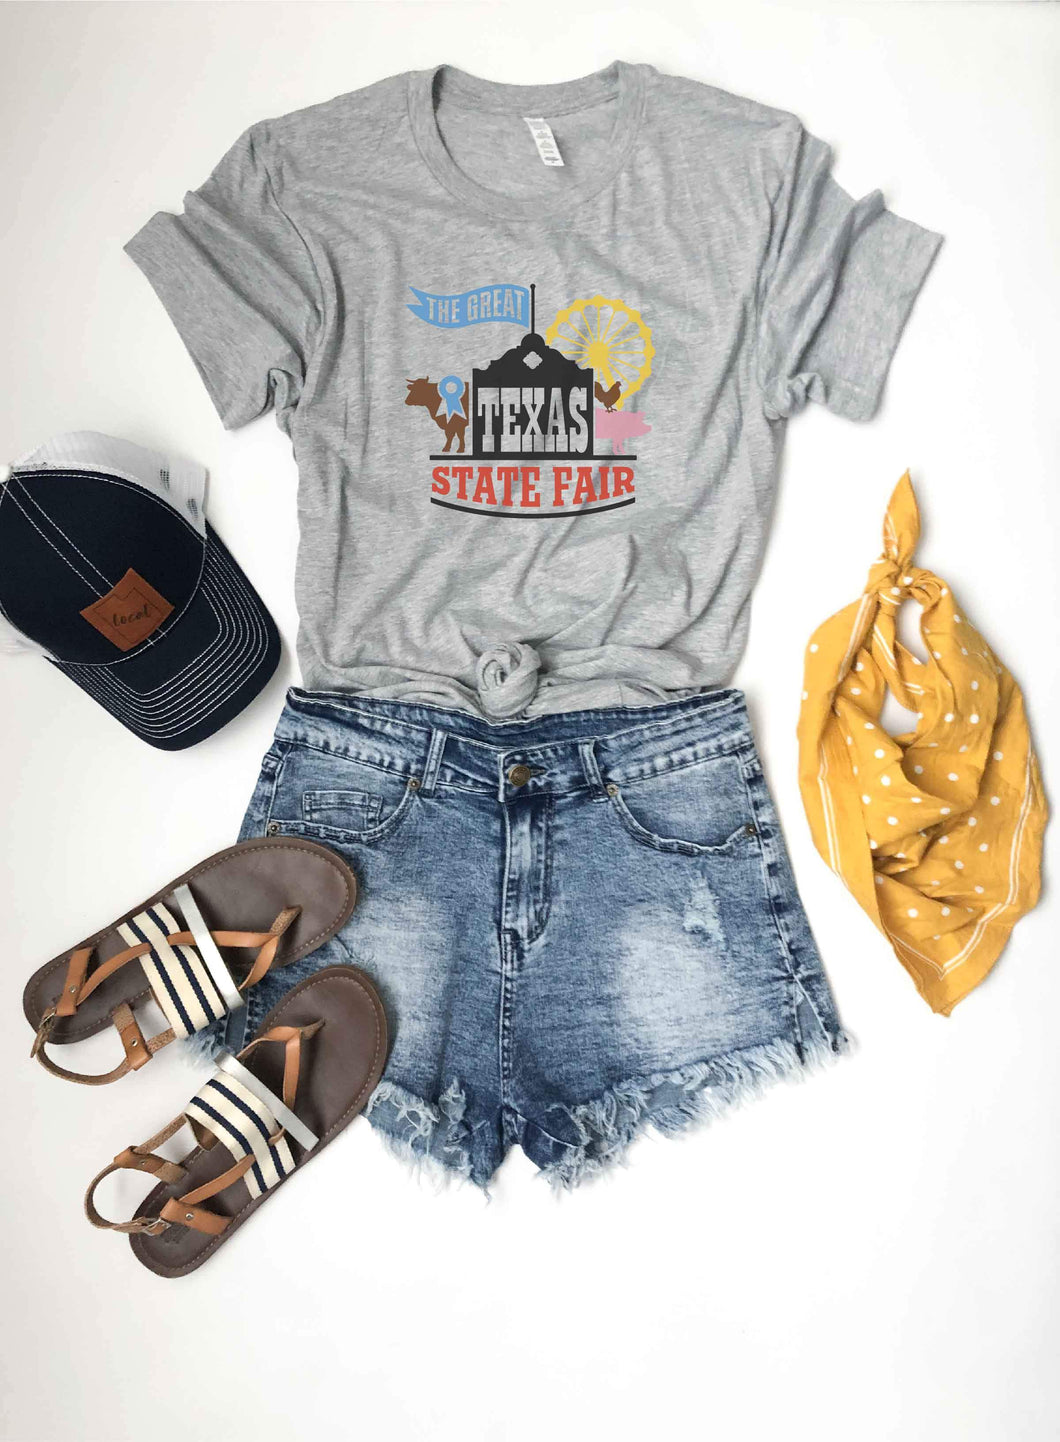 The great state fair tee Short sleeve graphic tee Bella Canvas 3001 athletic Heather